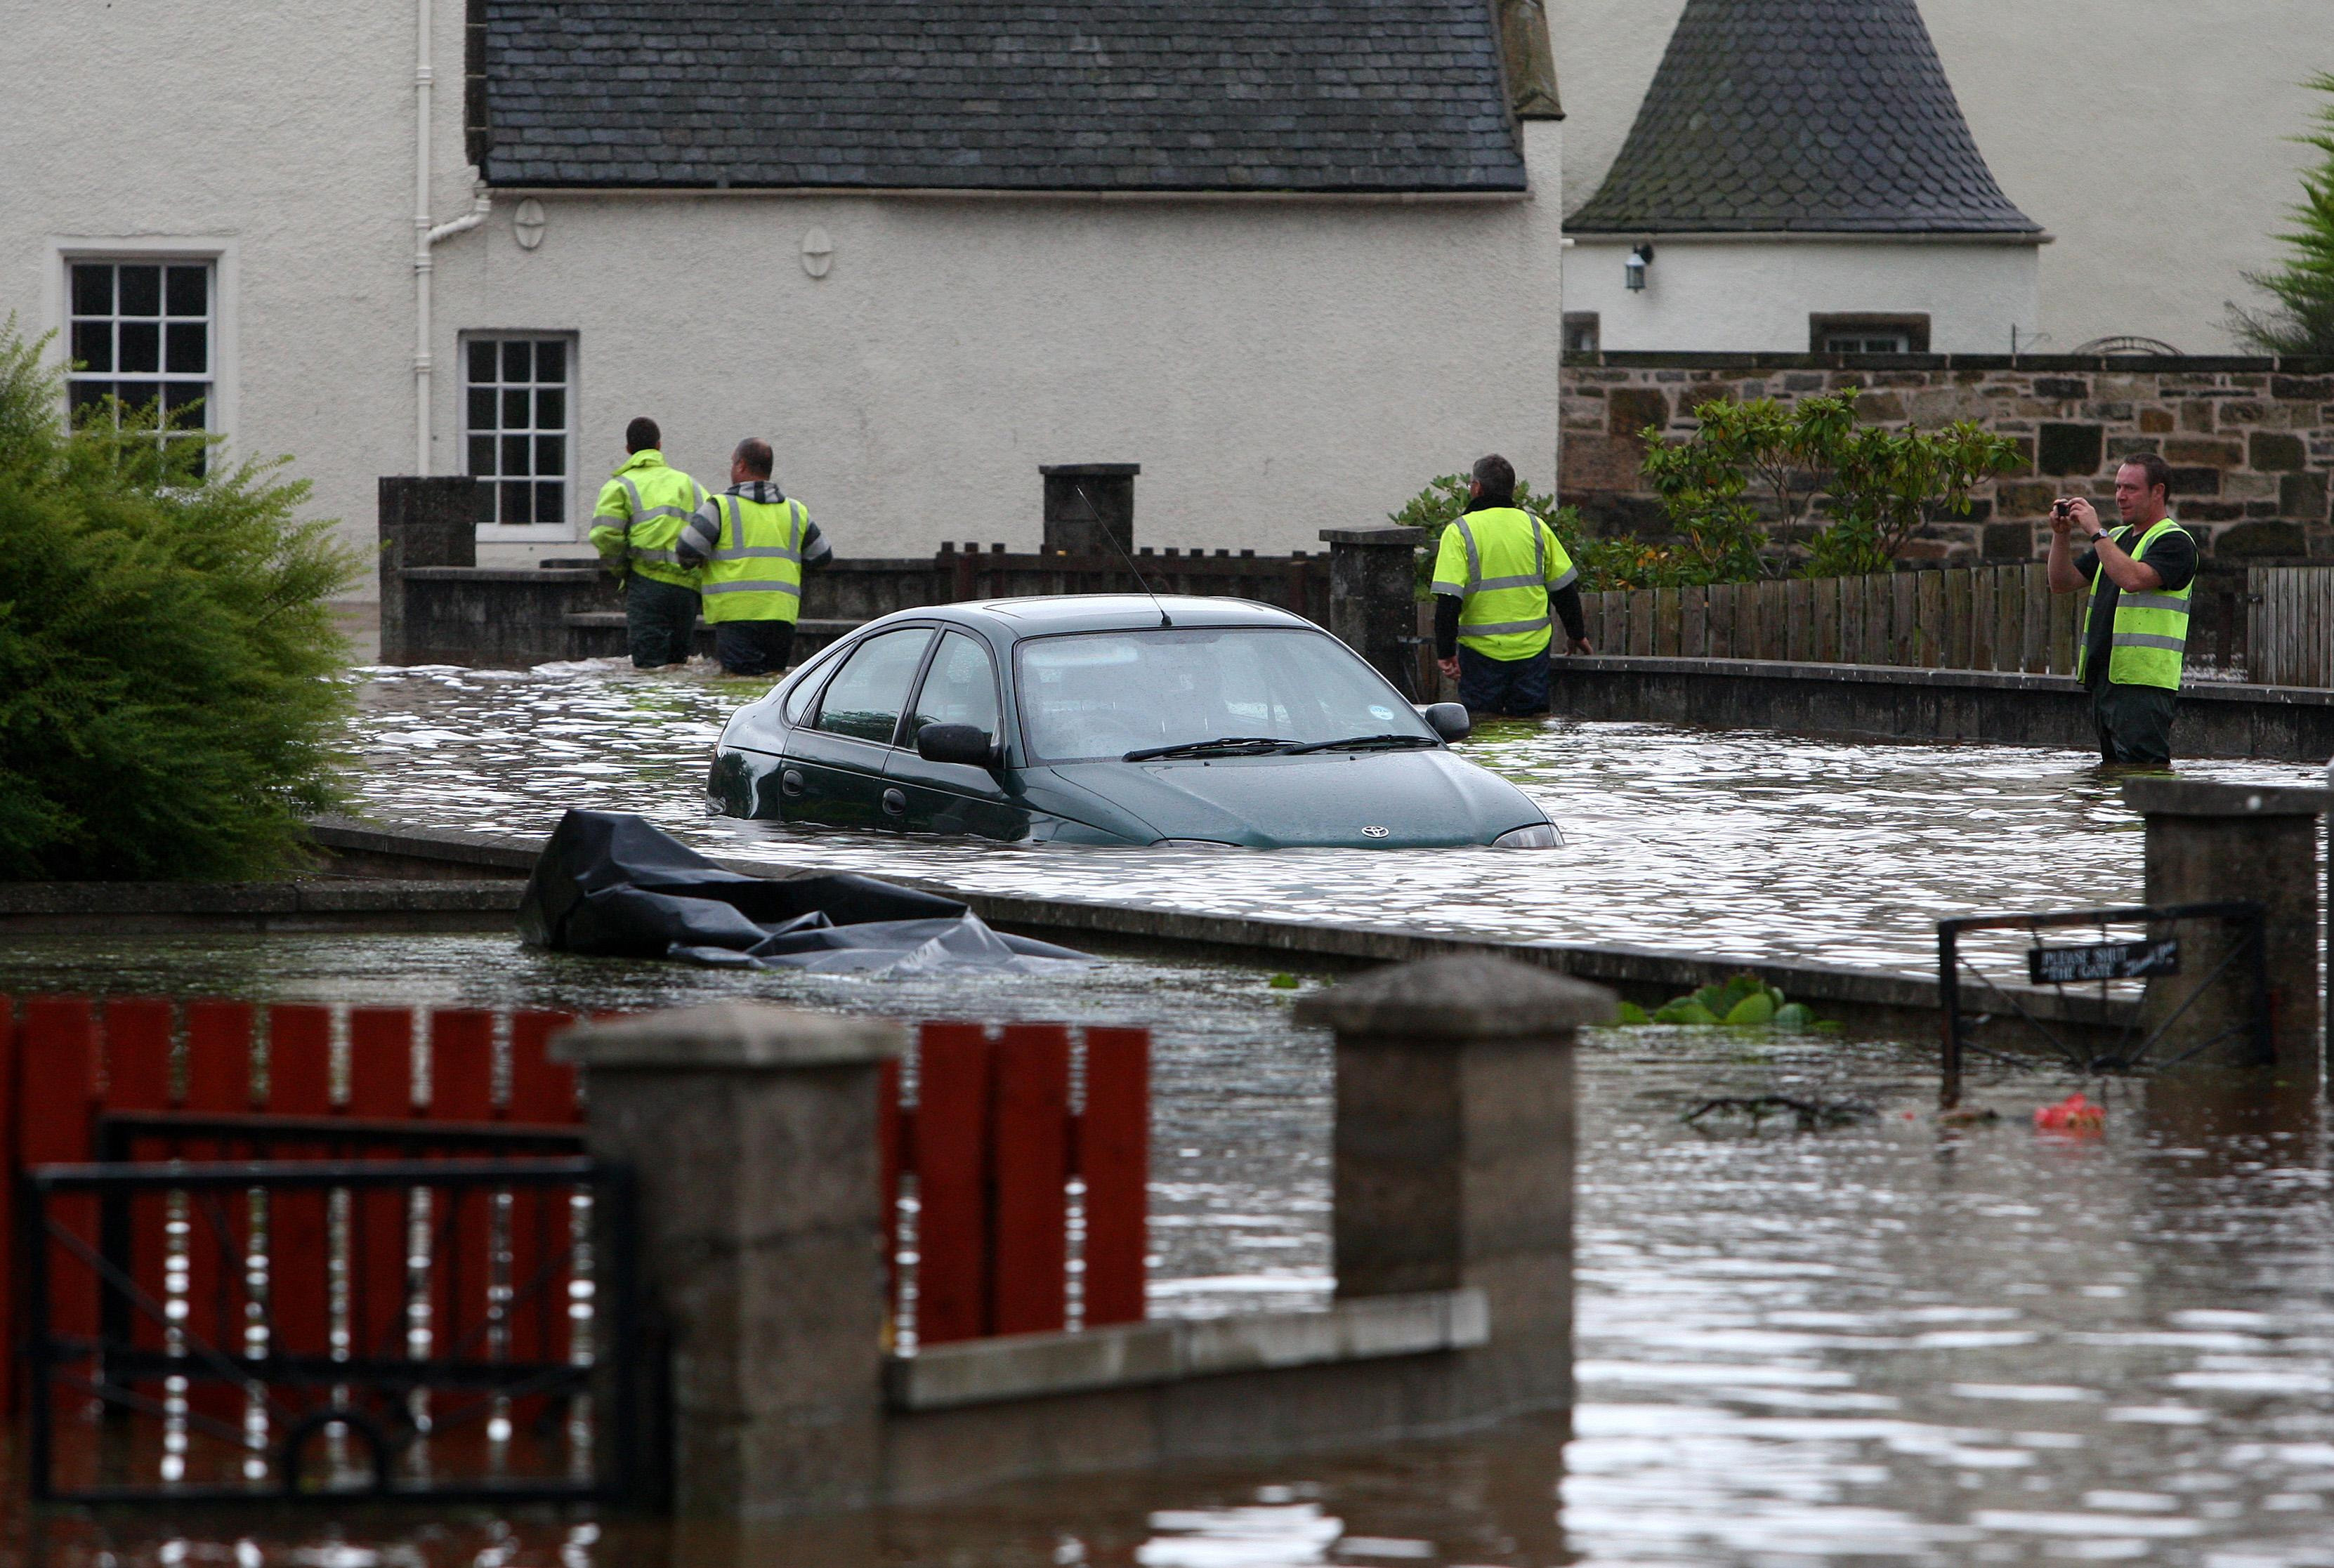 A car is submerged by flood water after the River Lossie burst in banks in Elgin.